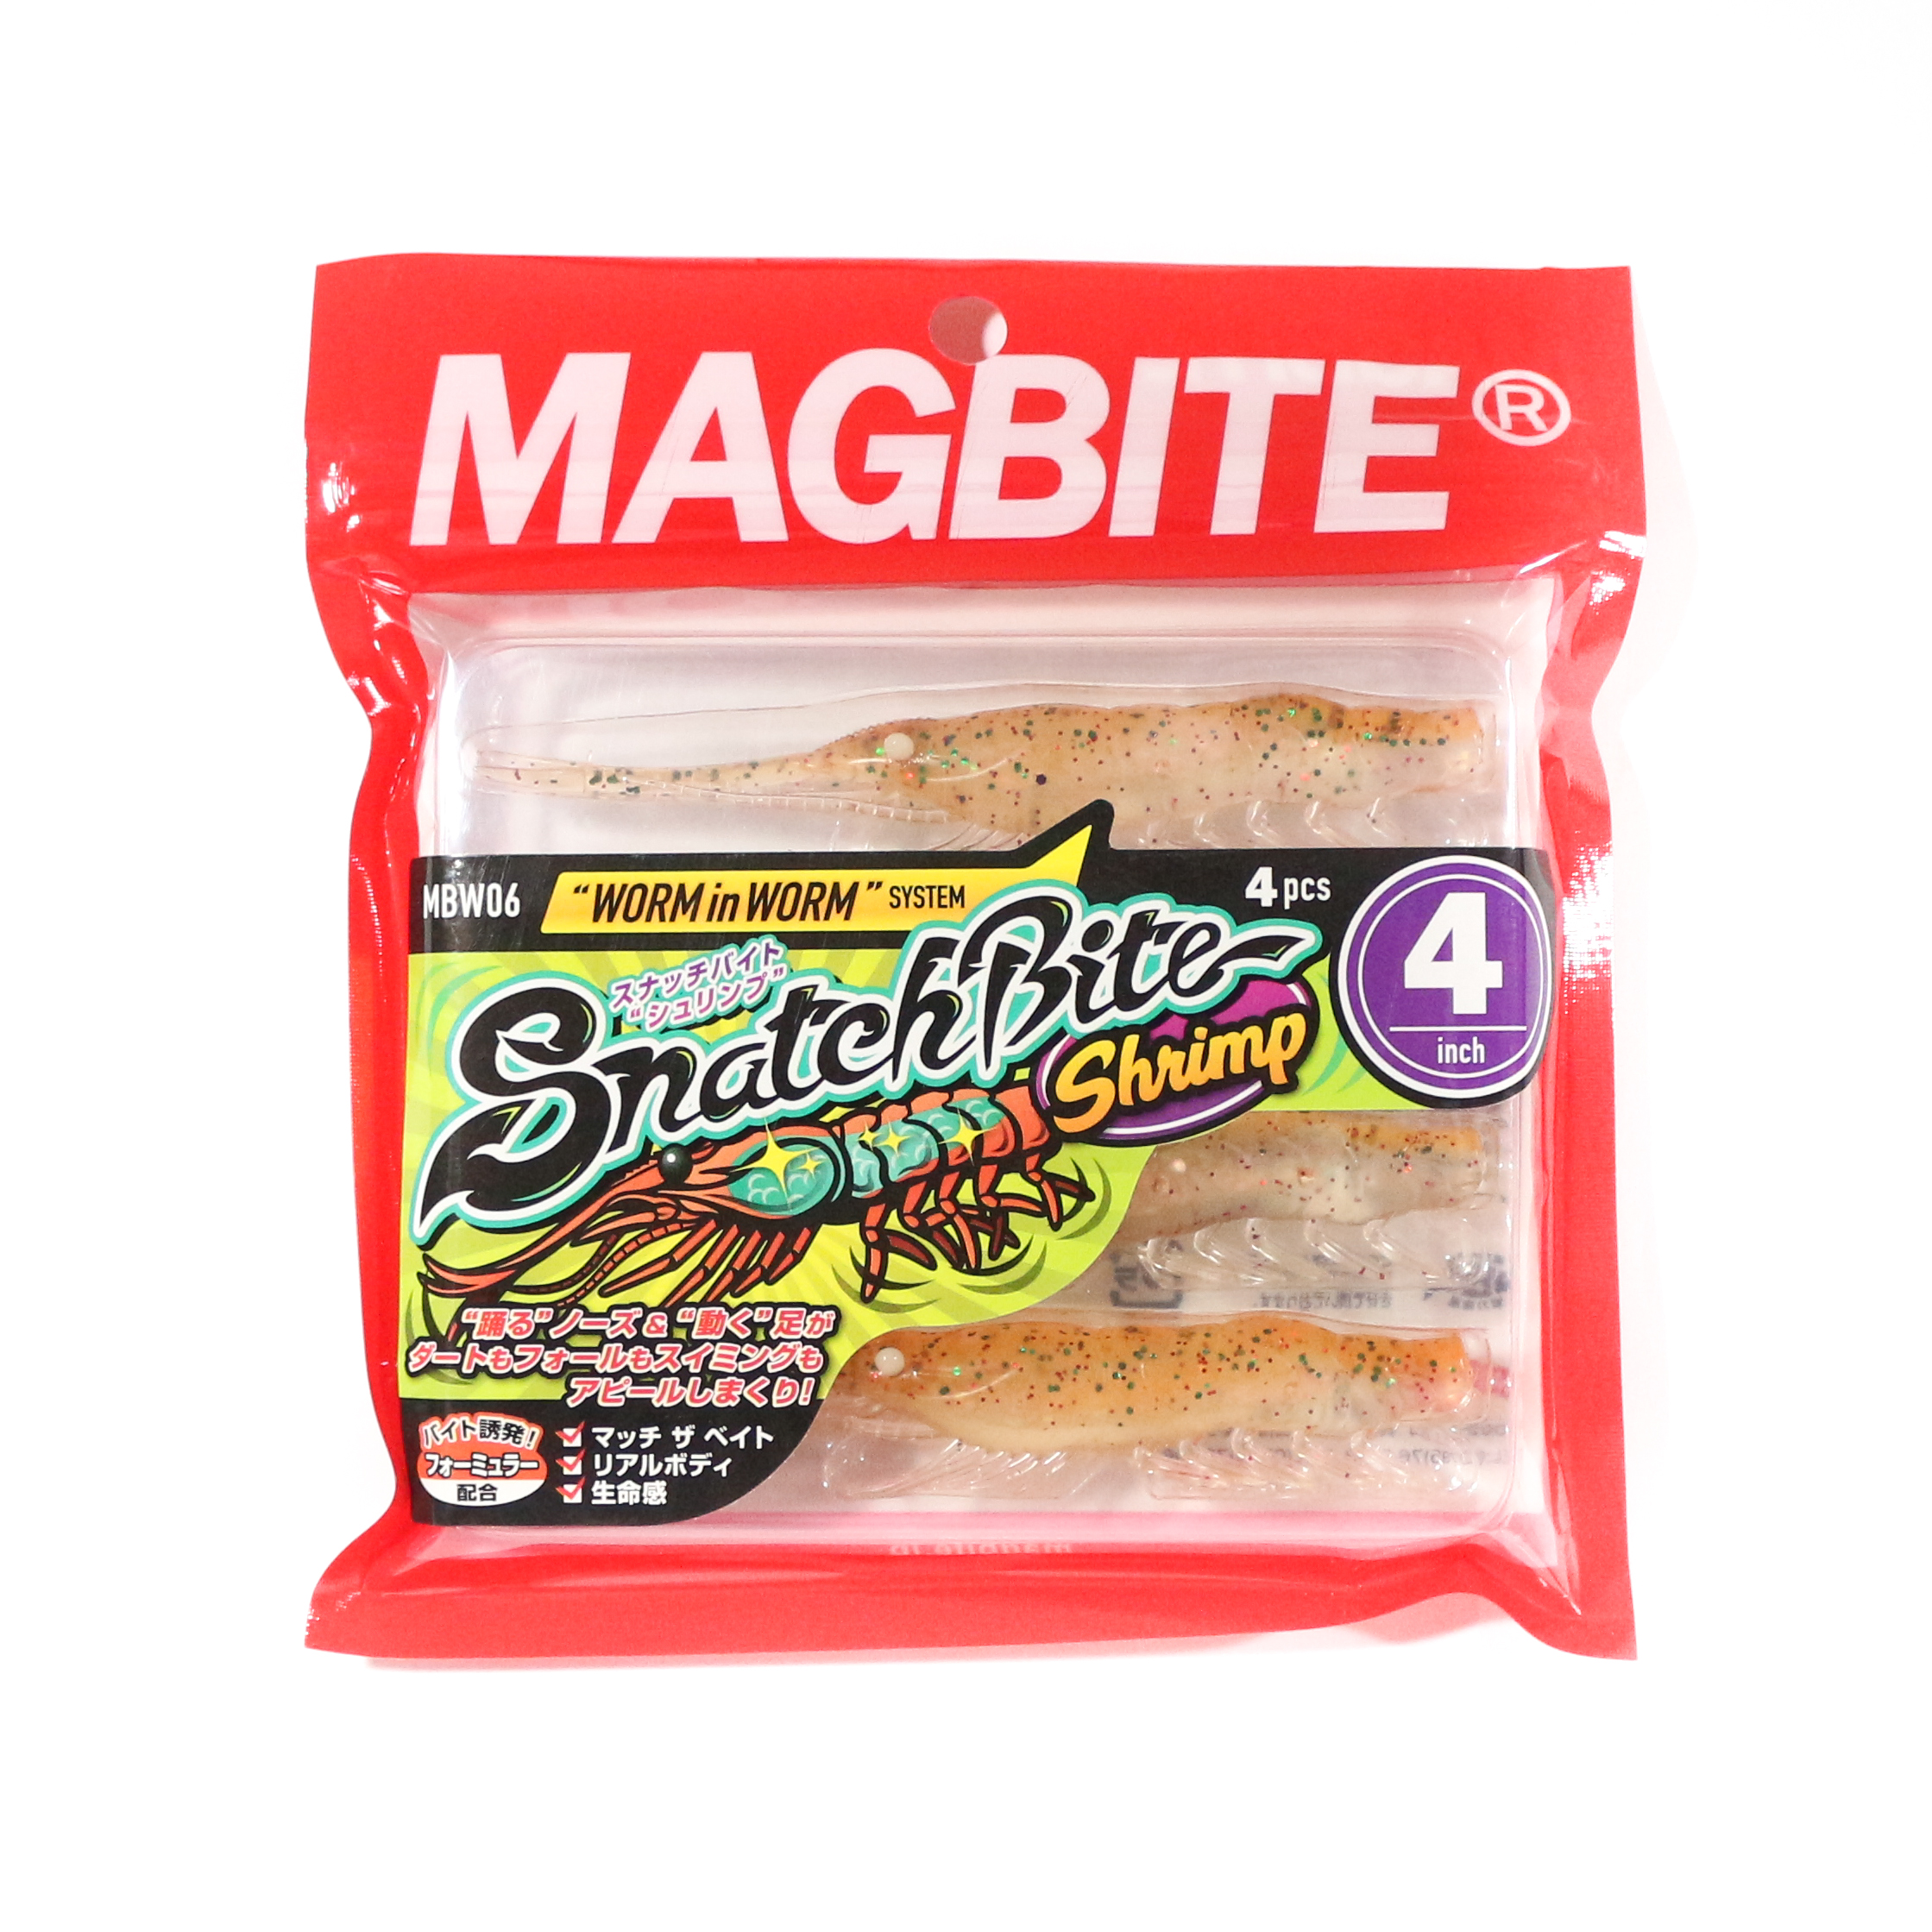 Harimitsu Mag Bite Snatch Shrimp 4 Inch 4 per pack 04 (5099)